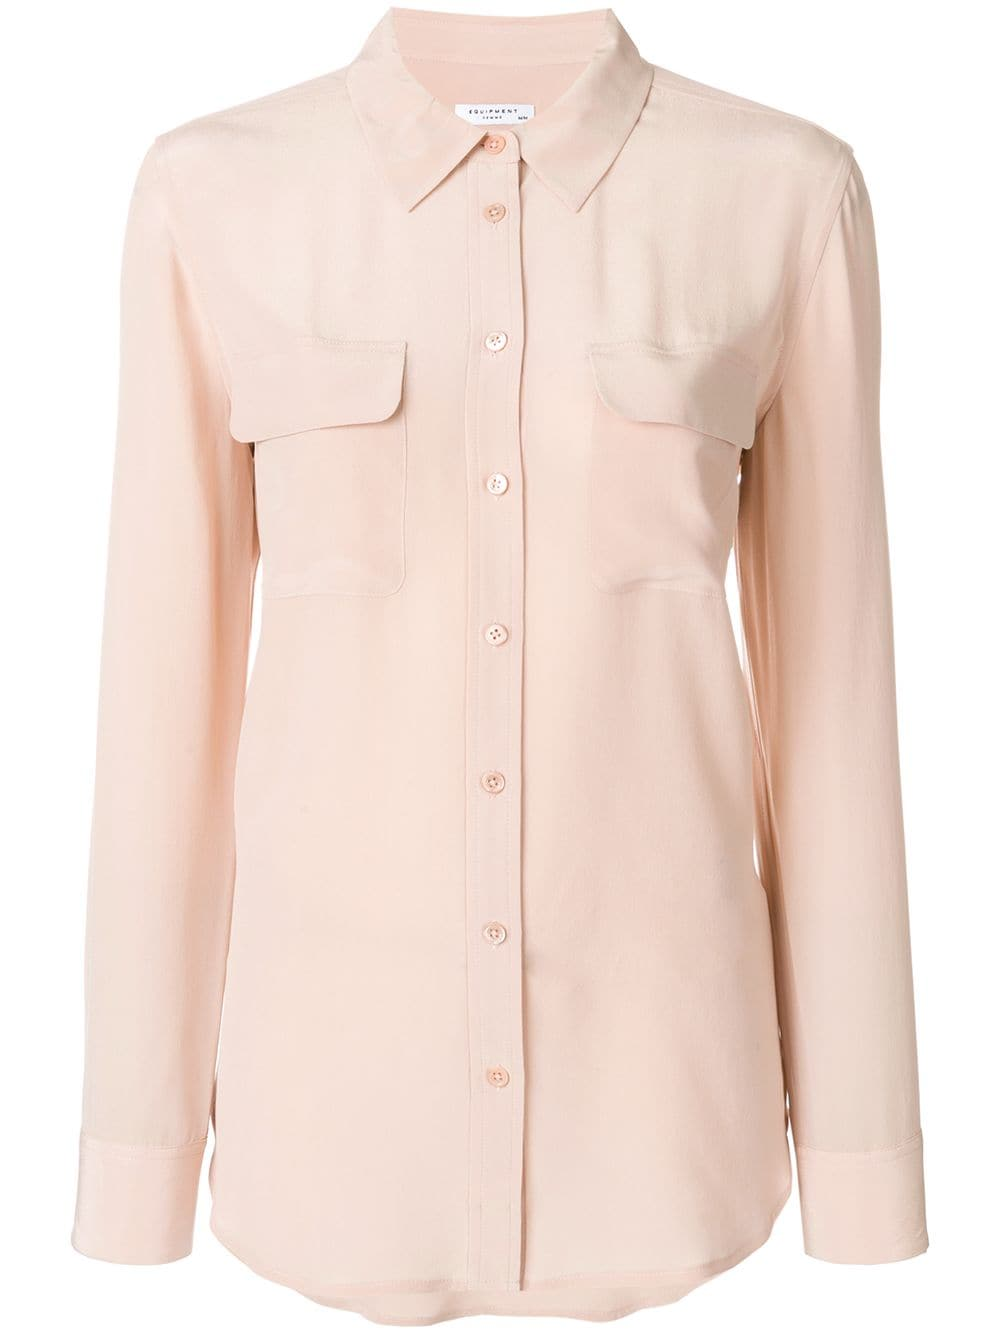 Equipment - Slim Signature Shirt - Nude